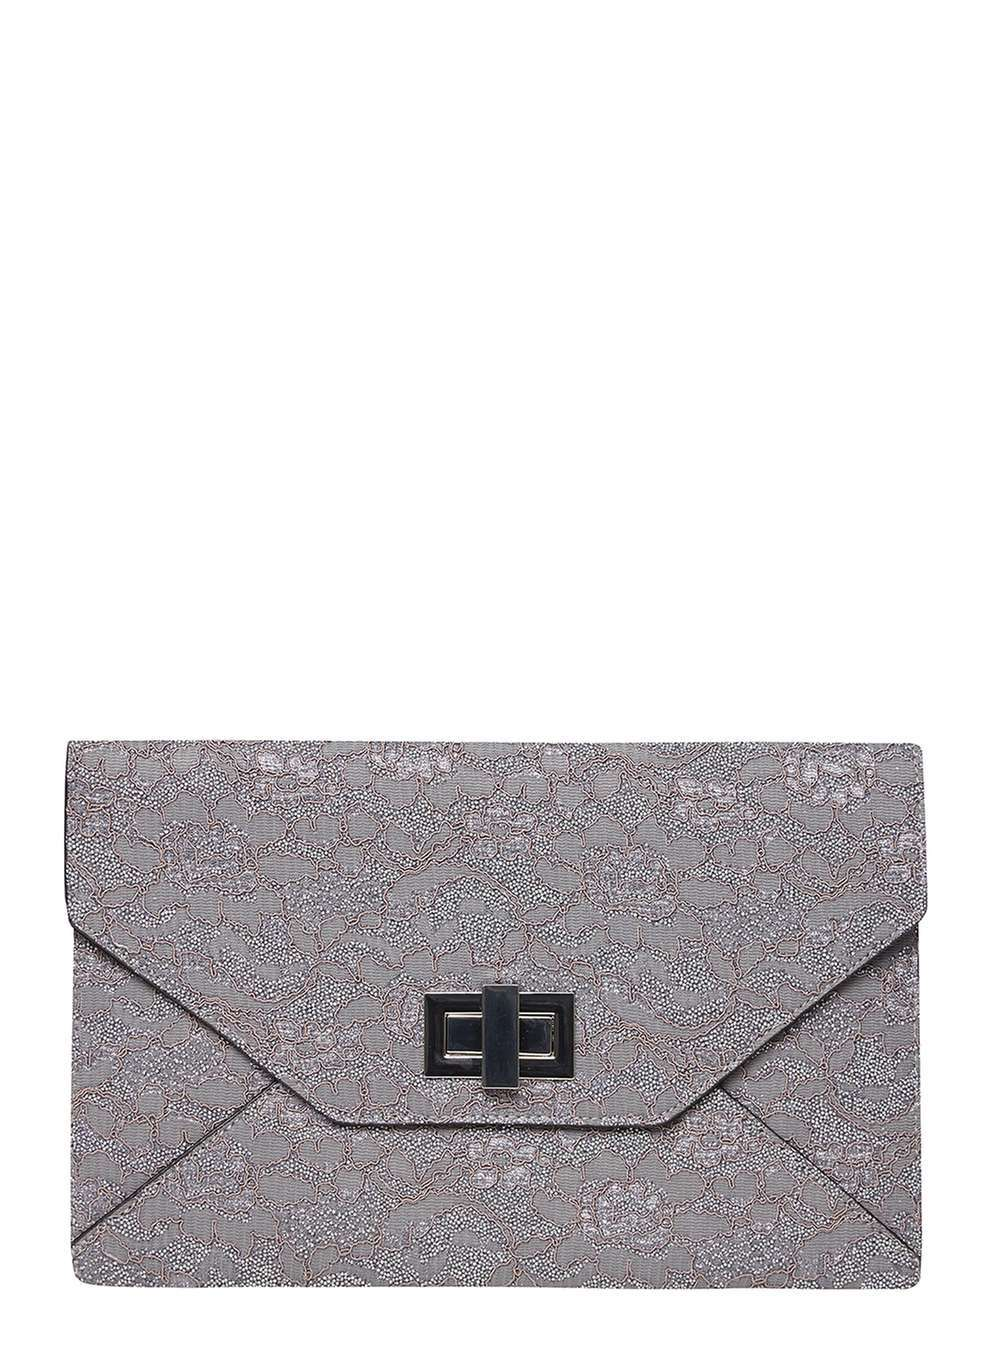 Womens Grey Lace Twist Lock Clutch Bag Grey - predominant colour: light grey; occasions: evening, occasion; type of pattern: standard; style: clutch; length: hand carry; size: standard; material: faux leather; finish: plain; pattern: patterned/print; season: a/w 2016; wardrobe: event